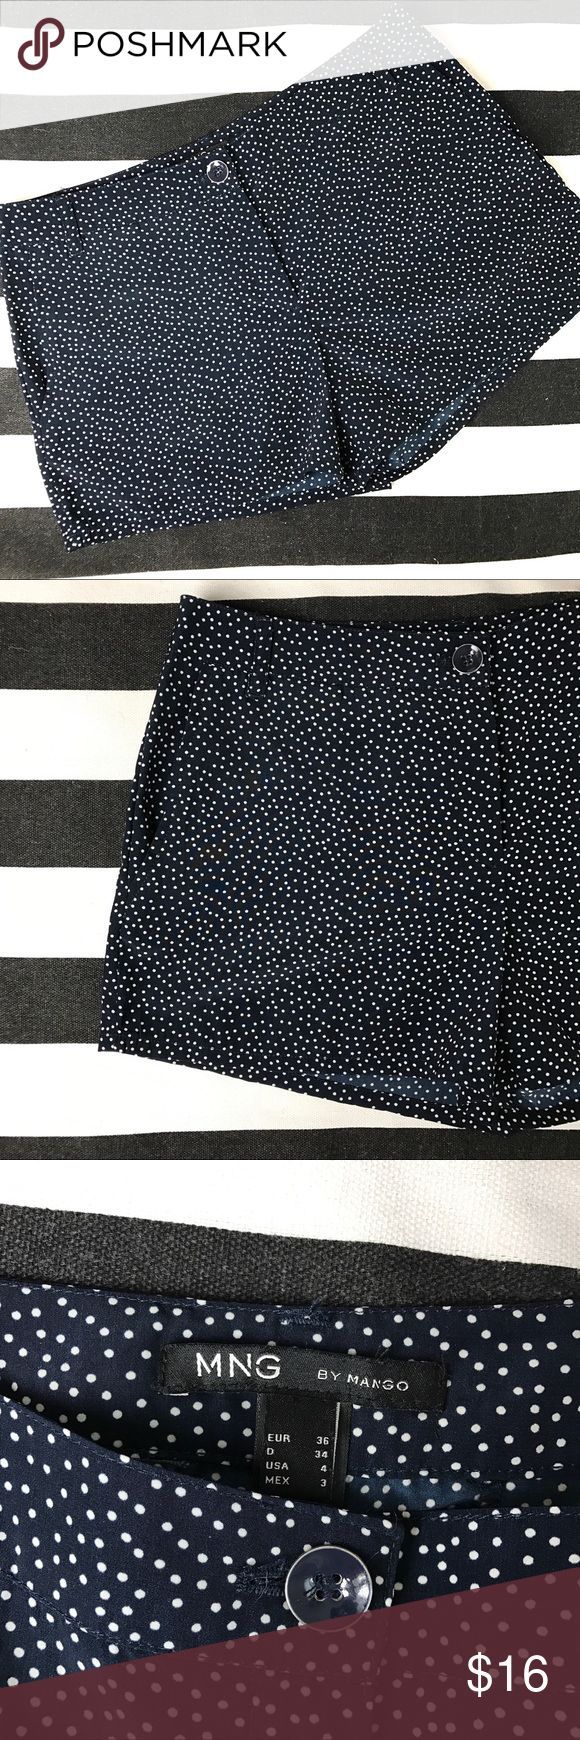 "MNG by Mango Navy Polka Dot Shorts MNG by Mango Navy Polka Dot Shorts. 11 1/4"" long. 3 1/4"" inseam. Front zipper with enamel button closure. Front side pockets and back slit pockets. Belt loops. These shorts are light weight and a silky Polyester blend. Excellent condition. Size 4. Mango Shorts"